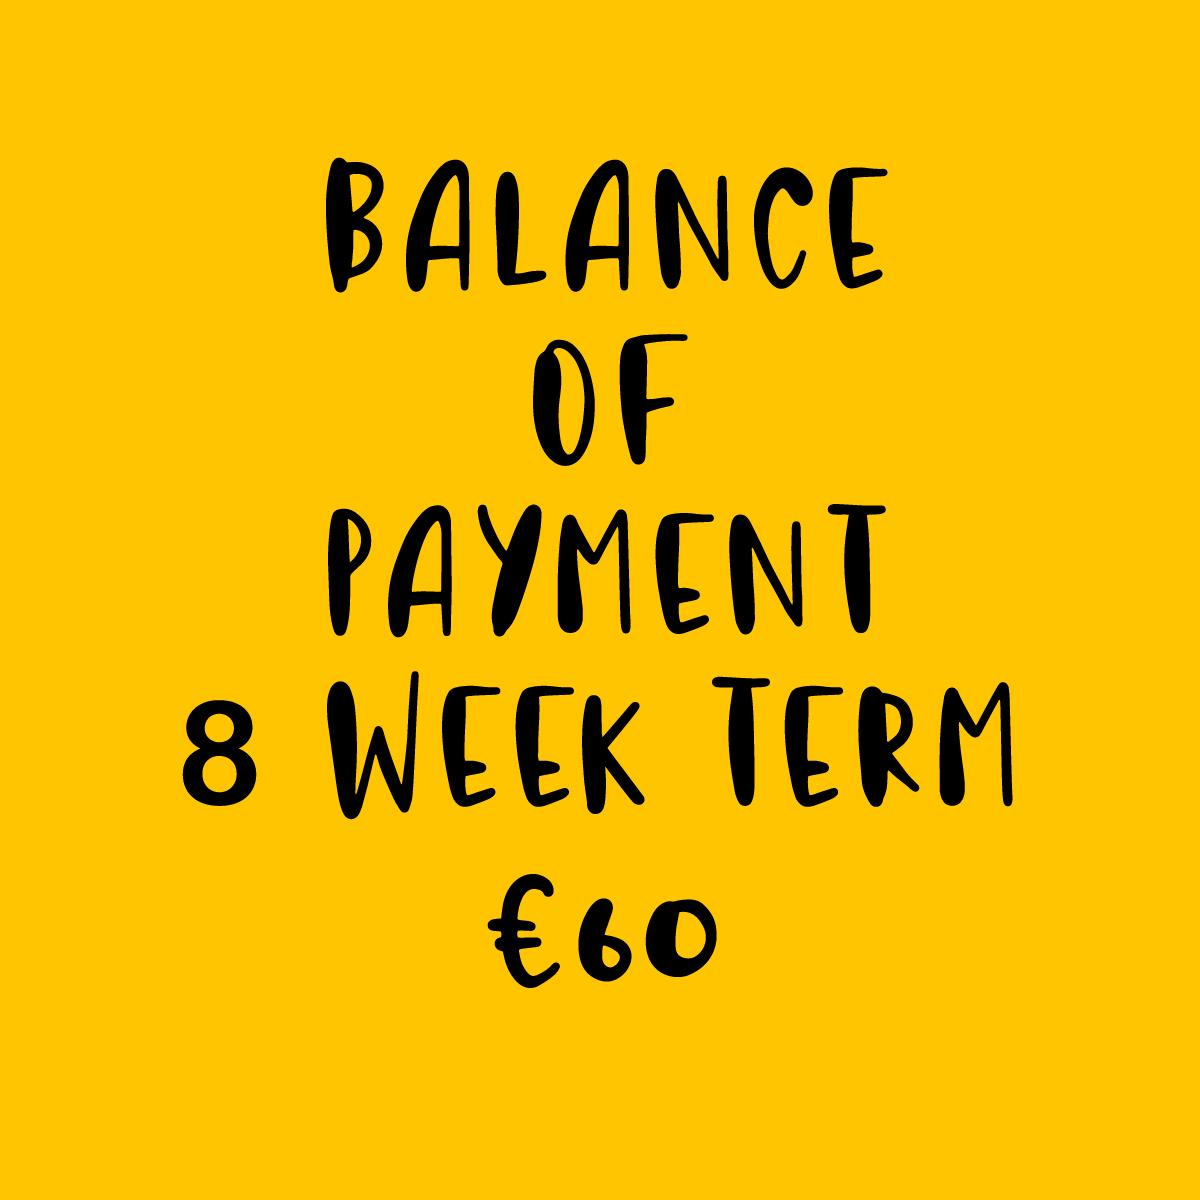 BALANCE OF PAYMENT 8 WEEK TERM